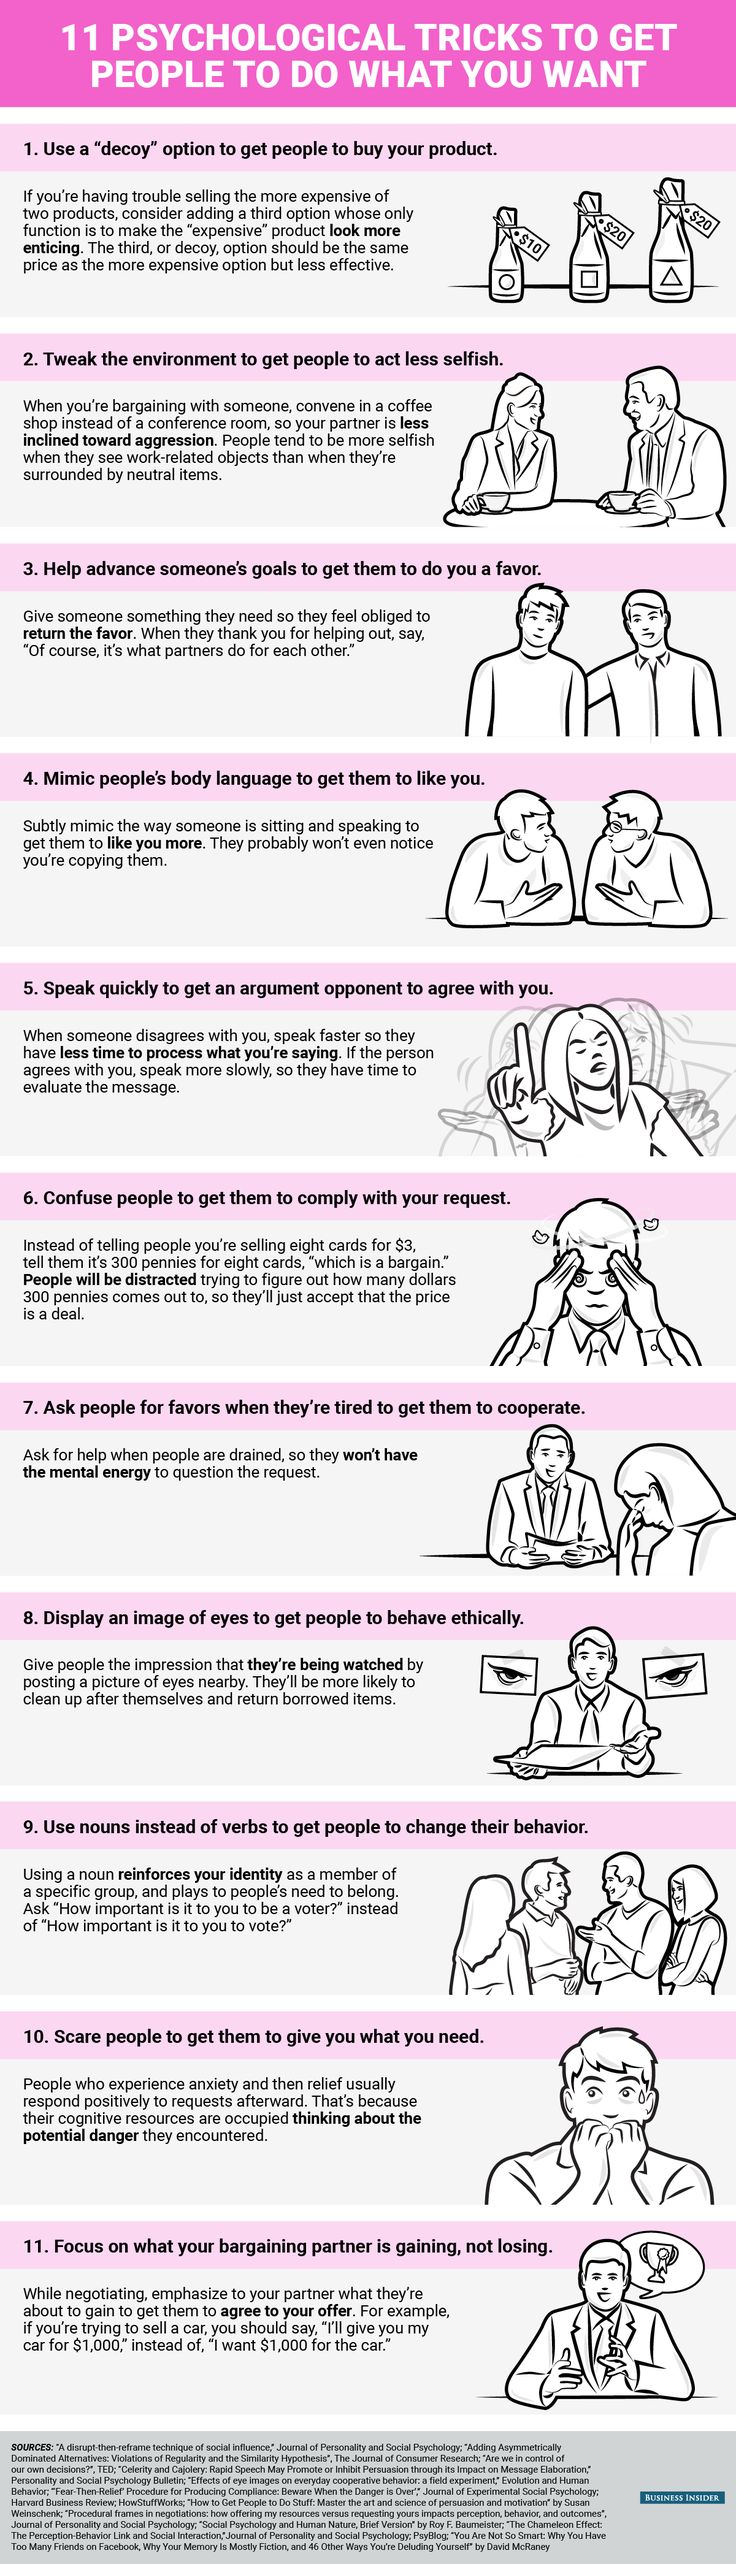 BI_graphics_11 psychological tricks to get people to do what you want